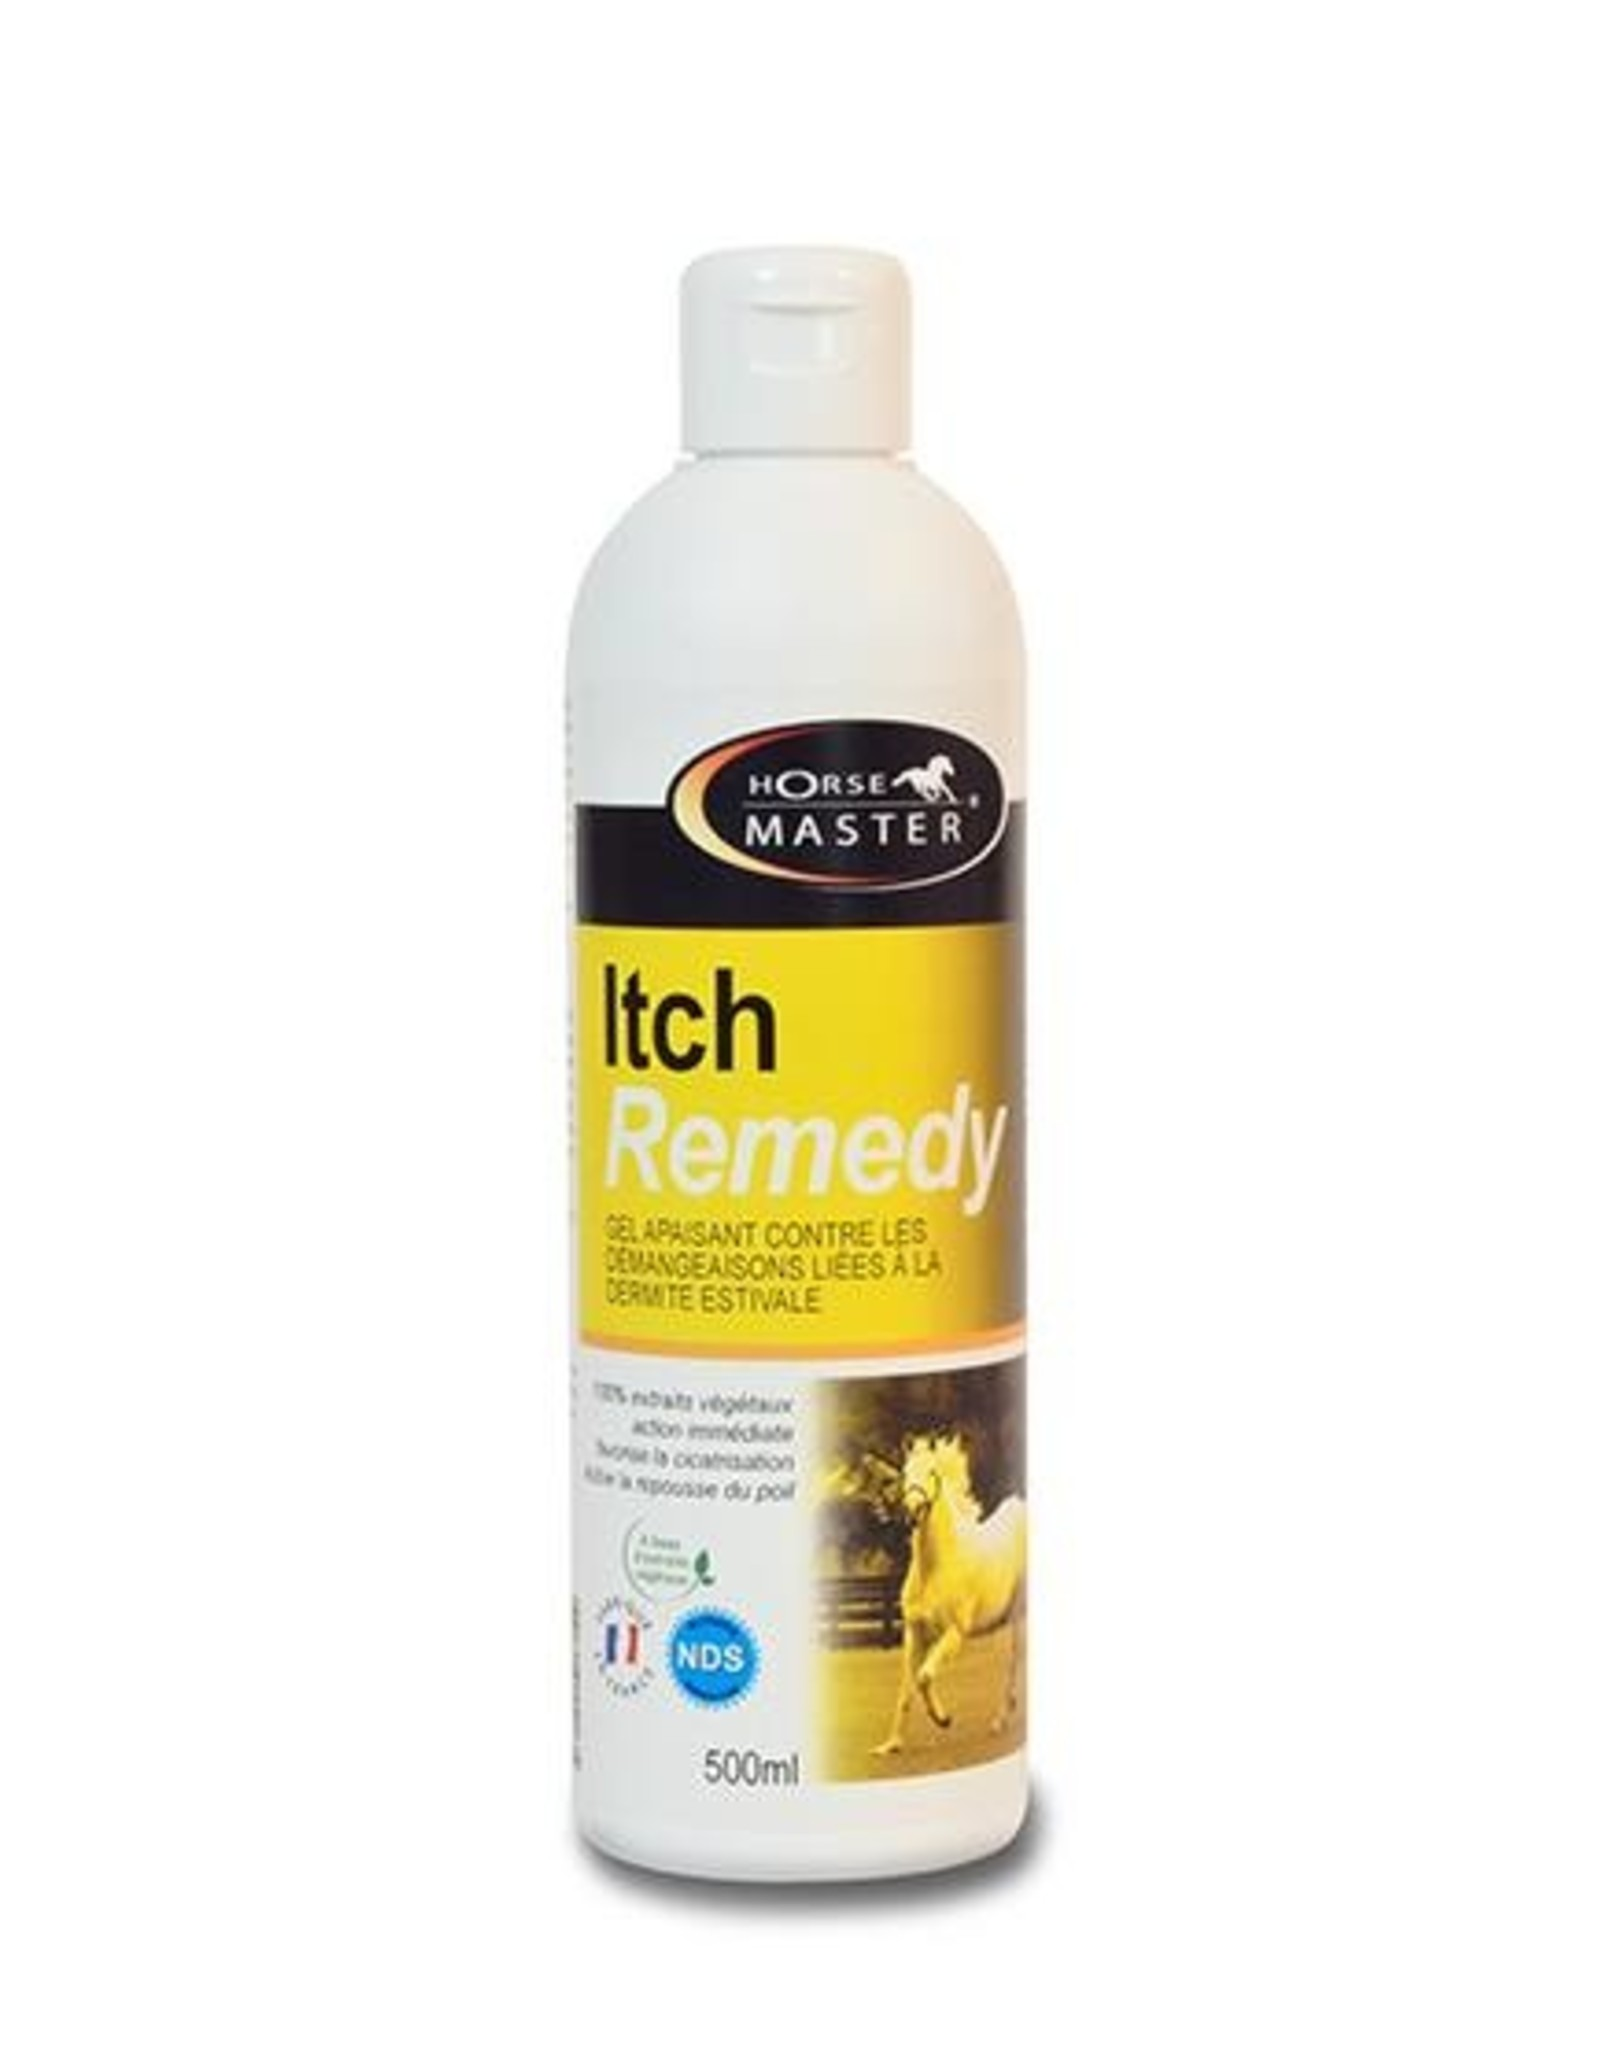 Horse Master Itch Remedy